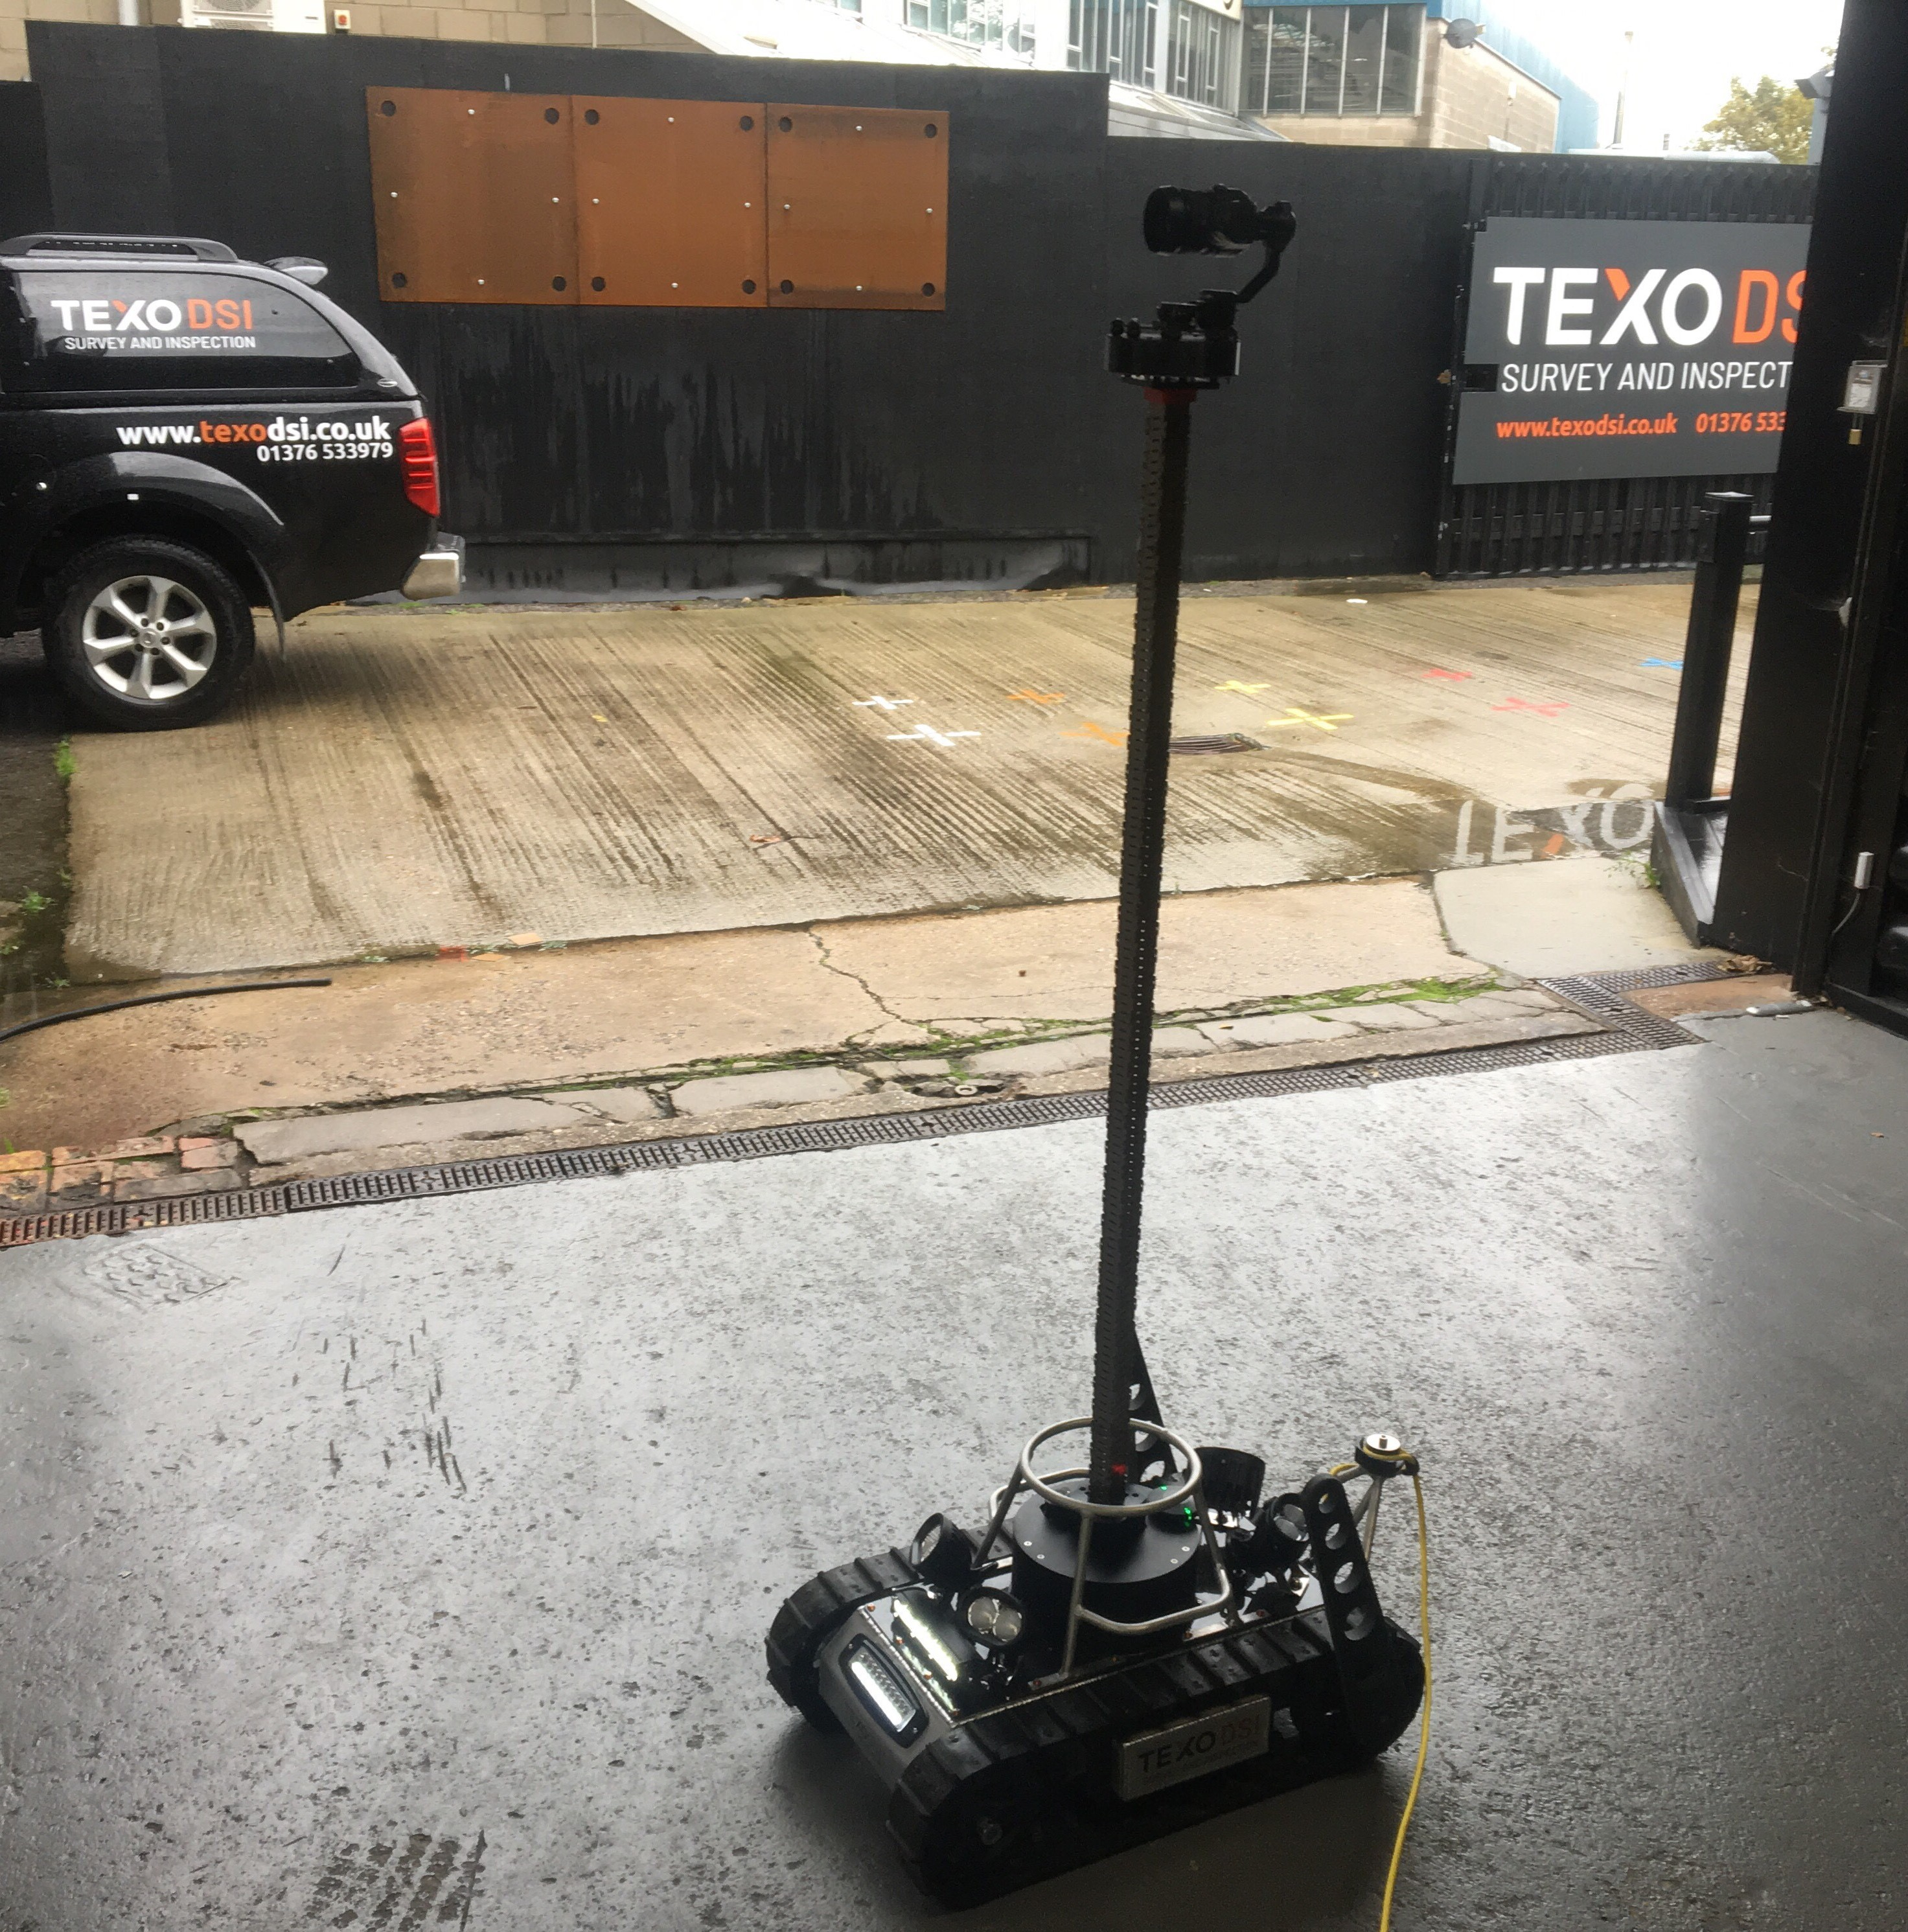 Texo DSI Launch State-of-the-Art Inspection Crawler Device